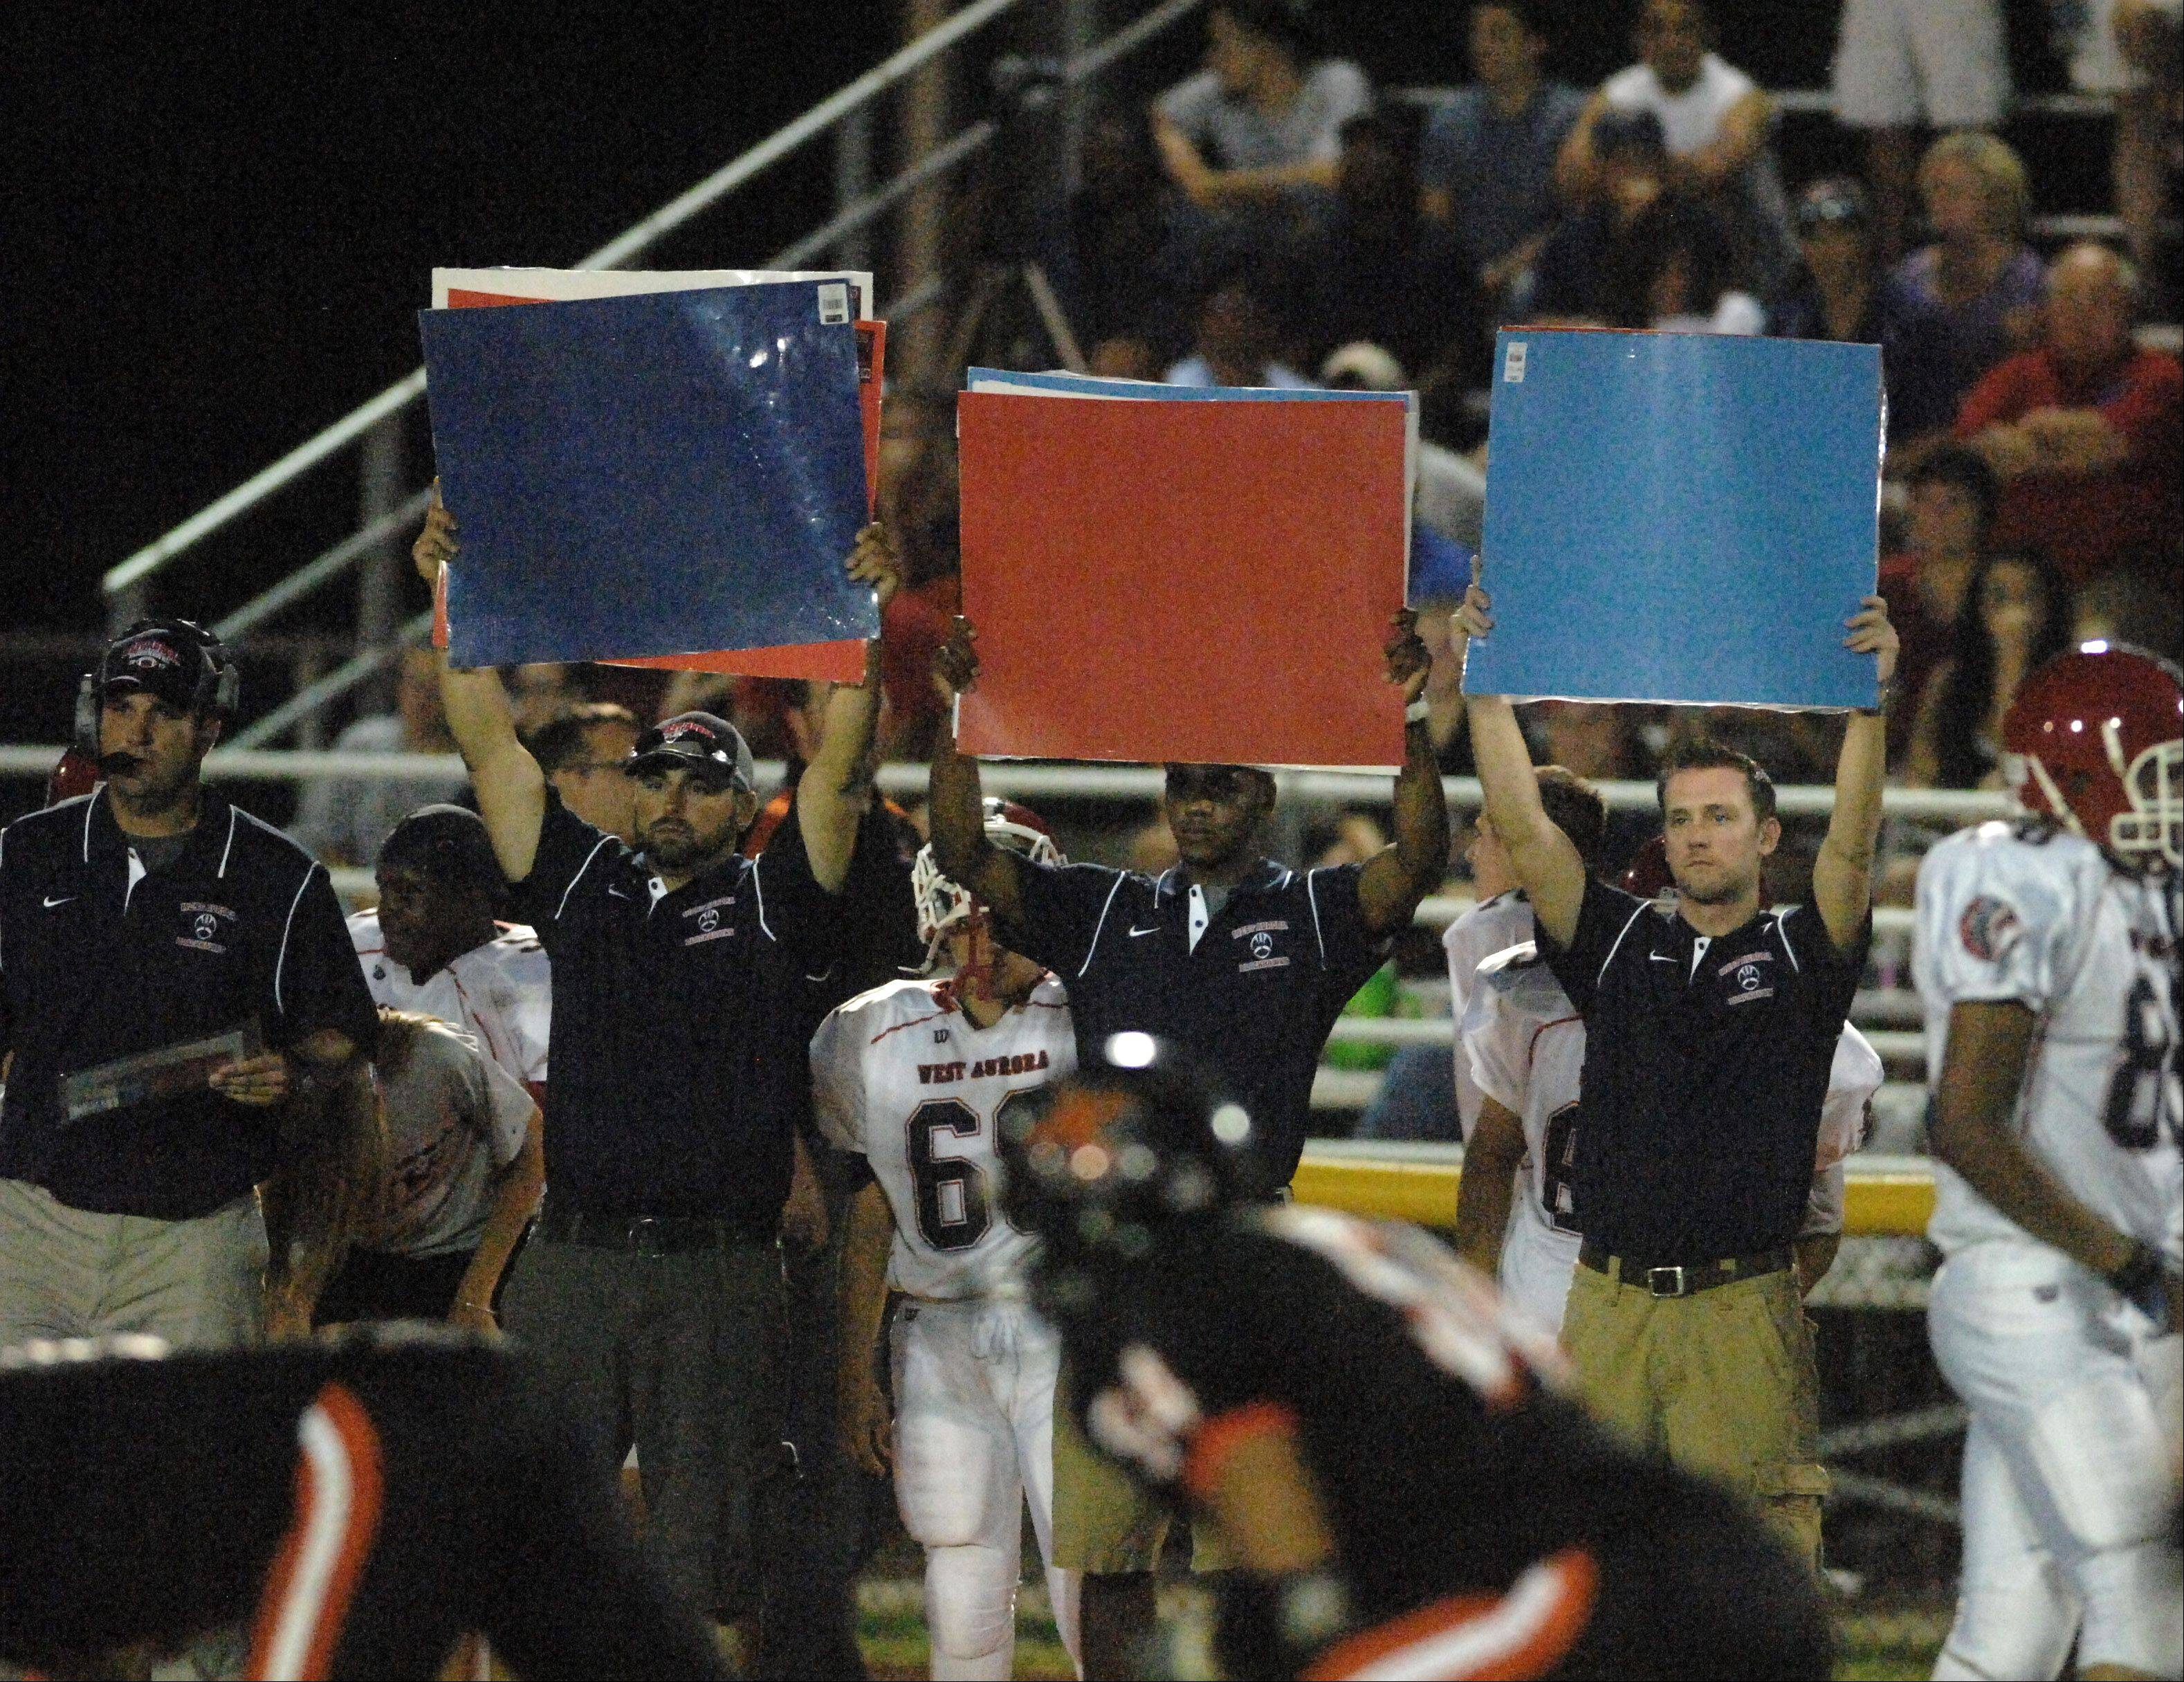 Week Two - Images from the West Aurora vs. St. Charles East football game Friday, August 31, 2012.